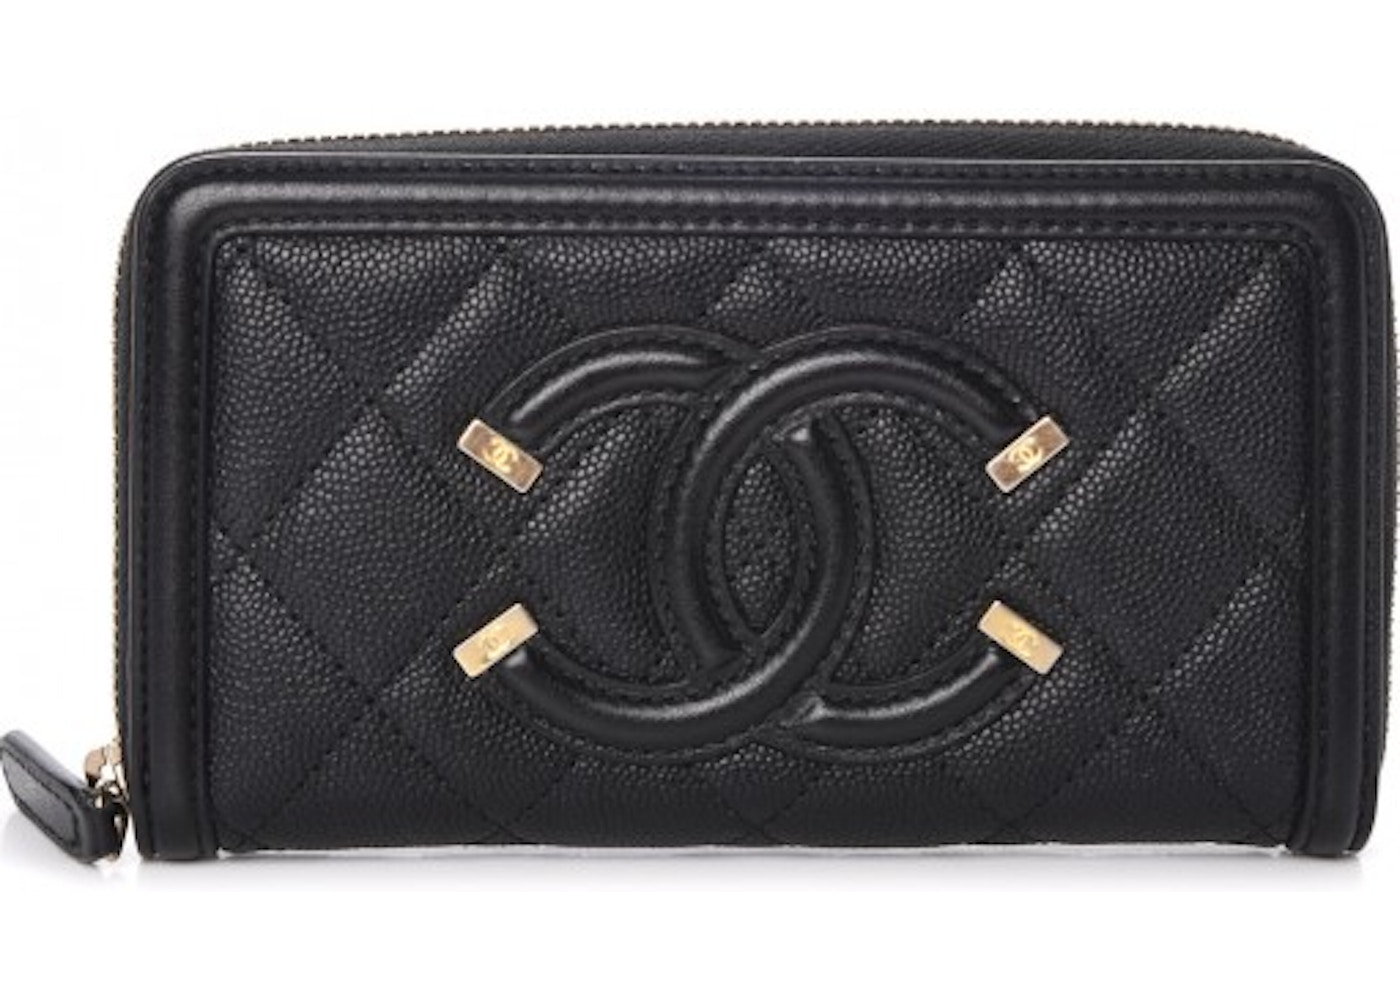 65e31311858c7e Chanel Filigree Zip Around Wallet Quilted Caviar Gold-tone Small Black. Quilted  Caviar Gold-tone Small Black